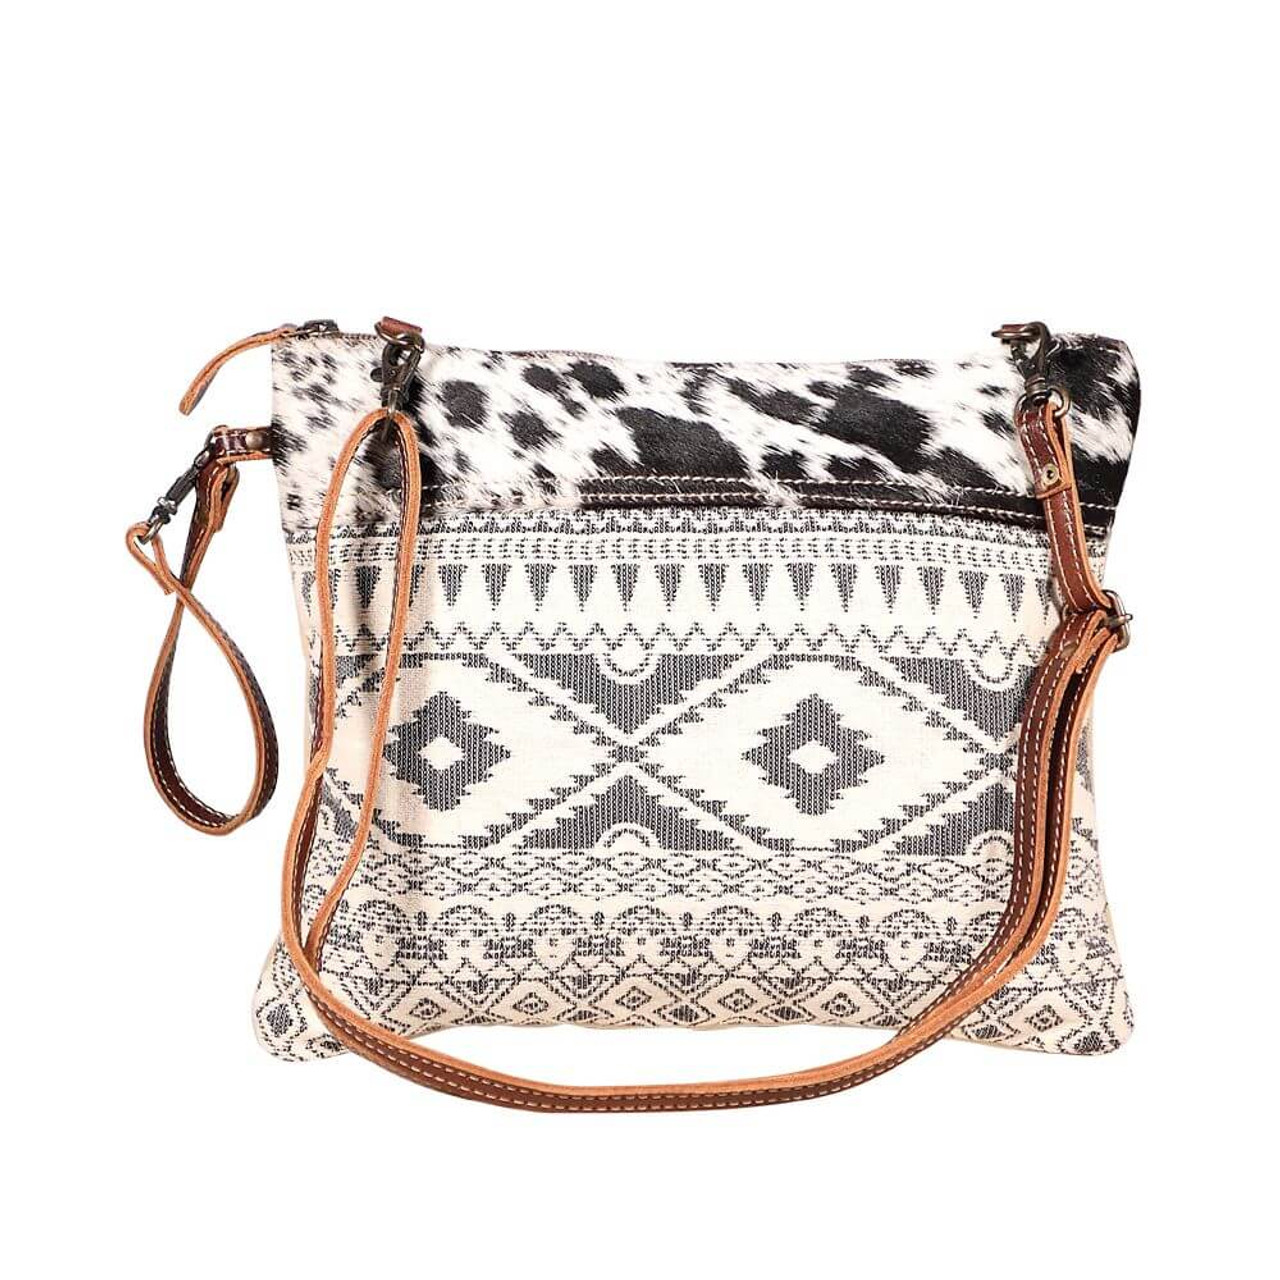 This crossbody bag wears a vintage look to add charm to your vivacious personality. The cow hide detail and ethnic rug pattern make for a beautiful look. Two strap options make it a must – have. The back is light tan denim. Zipper close at top; interior is fully lined and has one zipper pocket and two slip pockets.